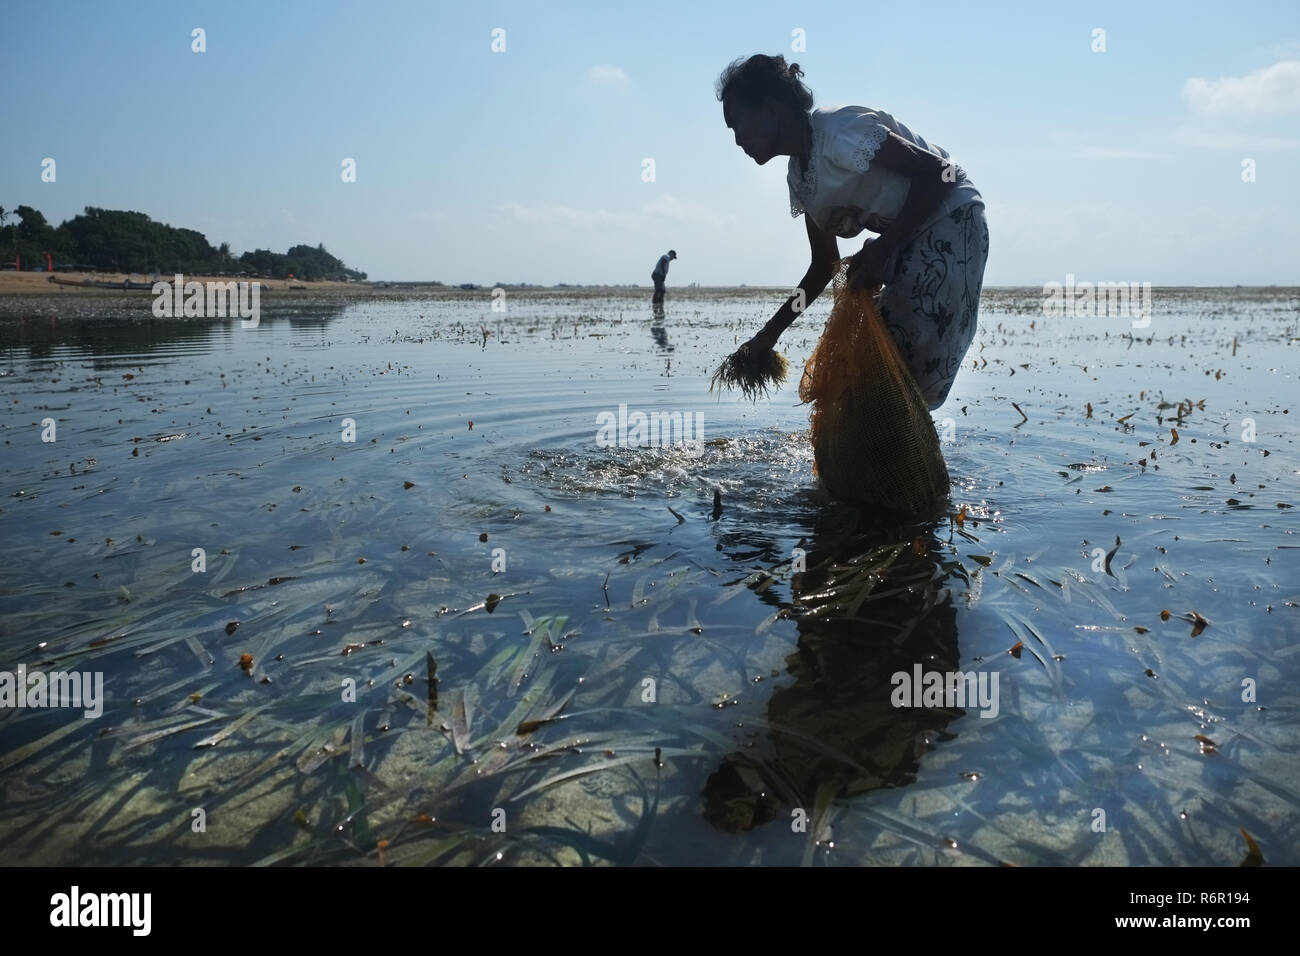 woman picking seagras - Stock Image